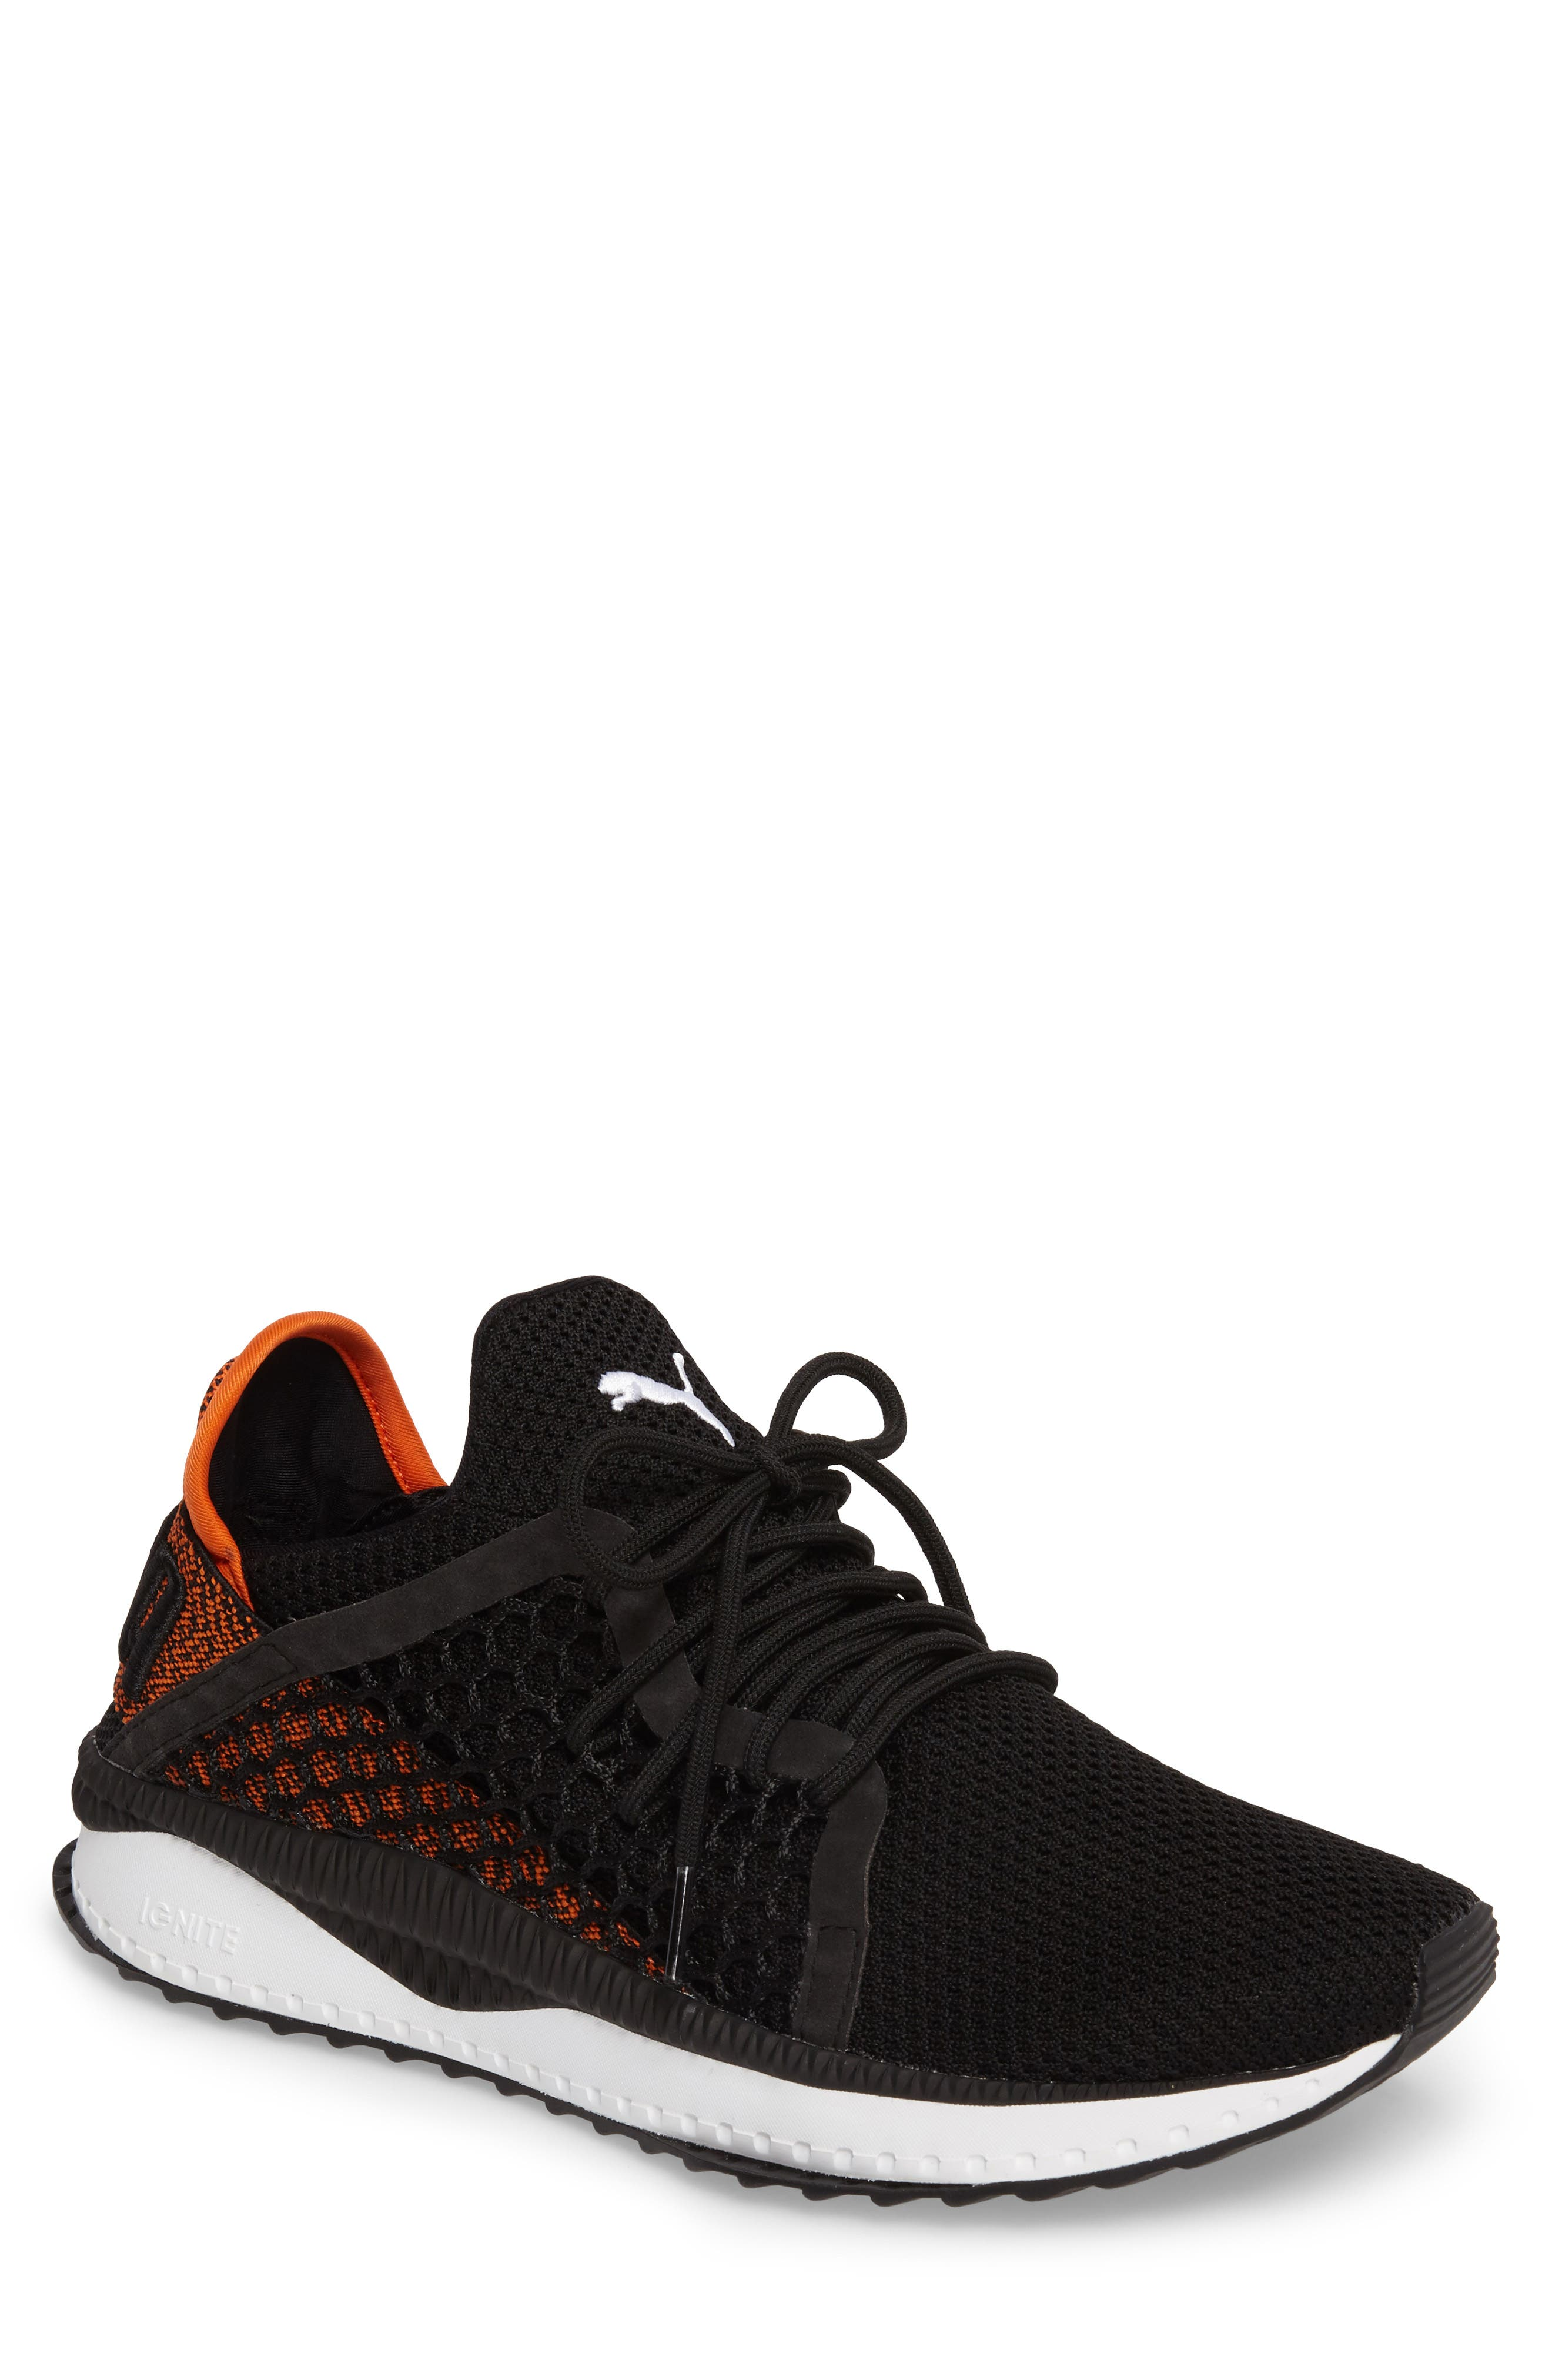 Alternate Image 1 Selected - PUMA Tsugi Netfit Training Shoe (Men)